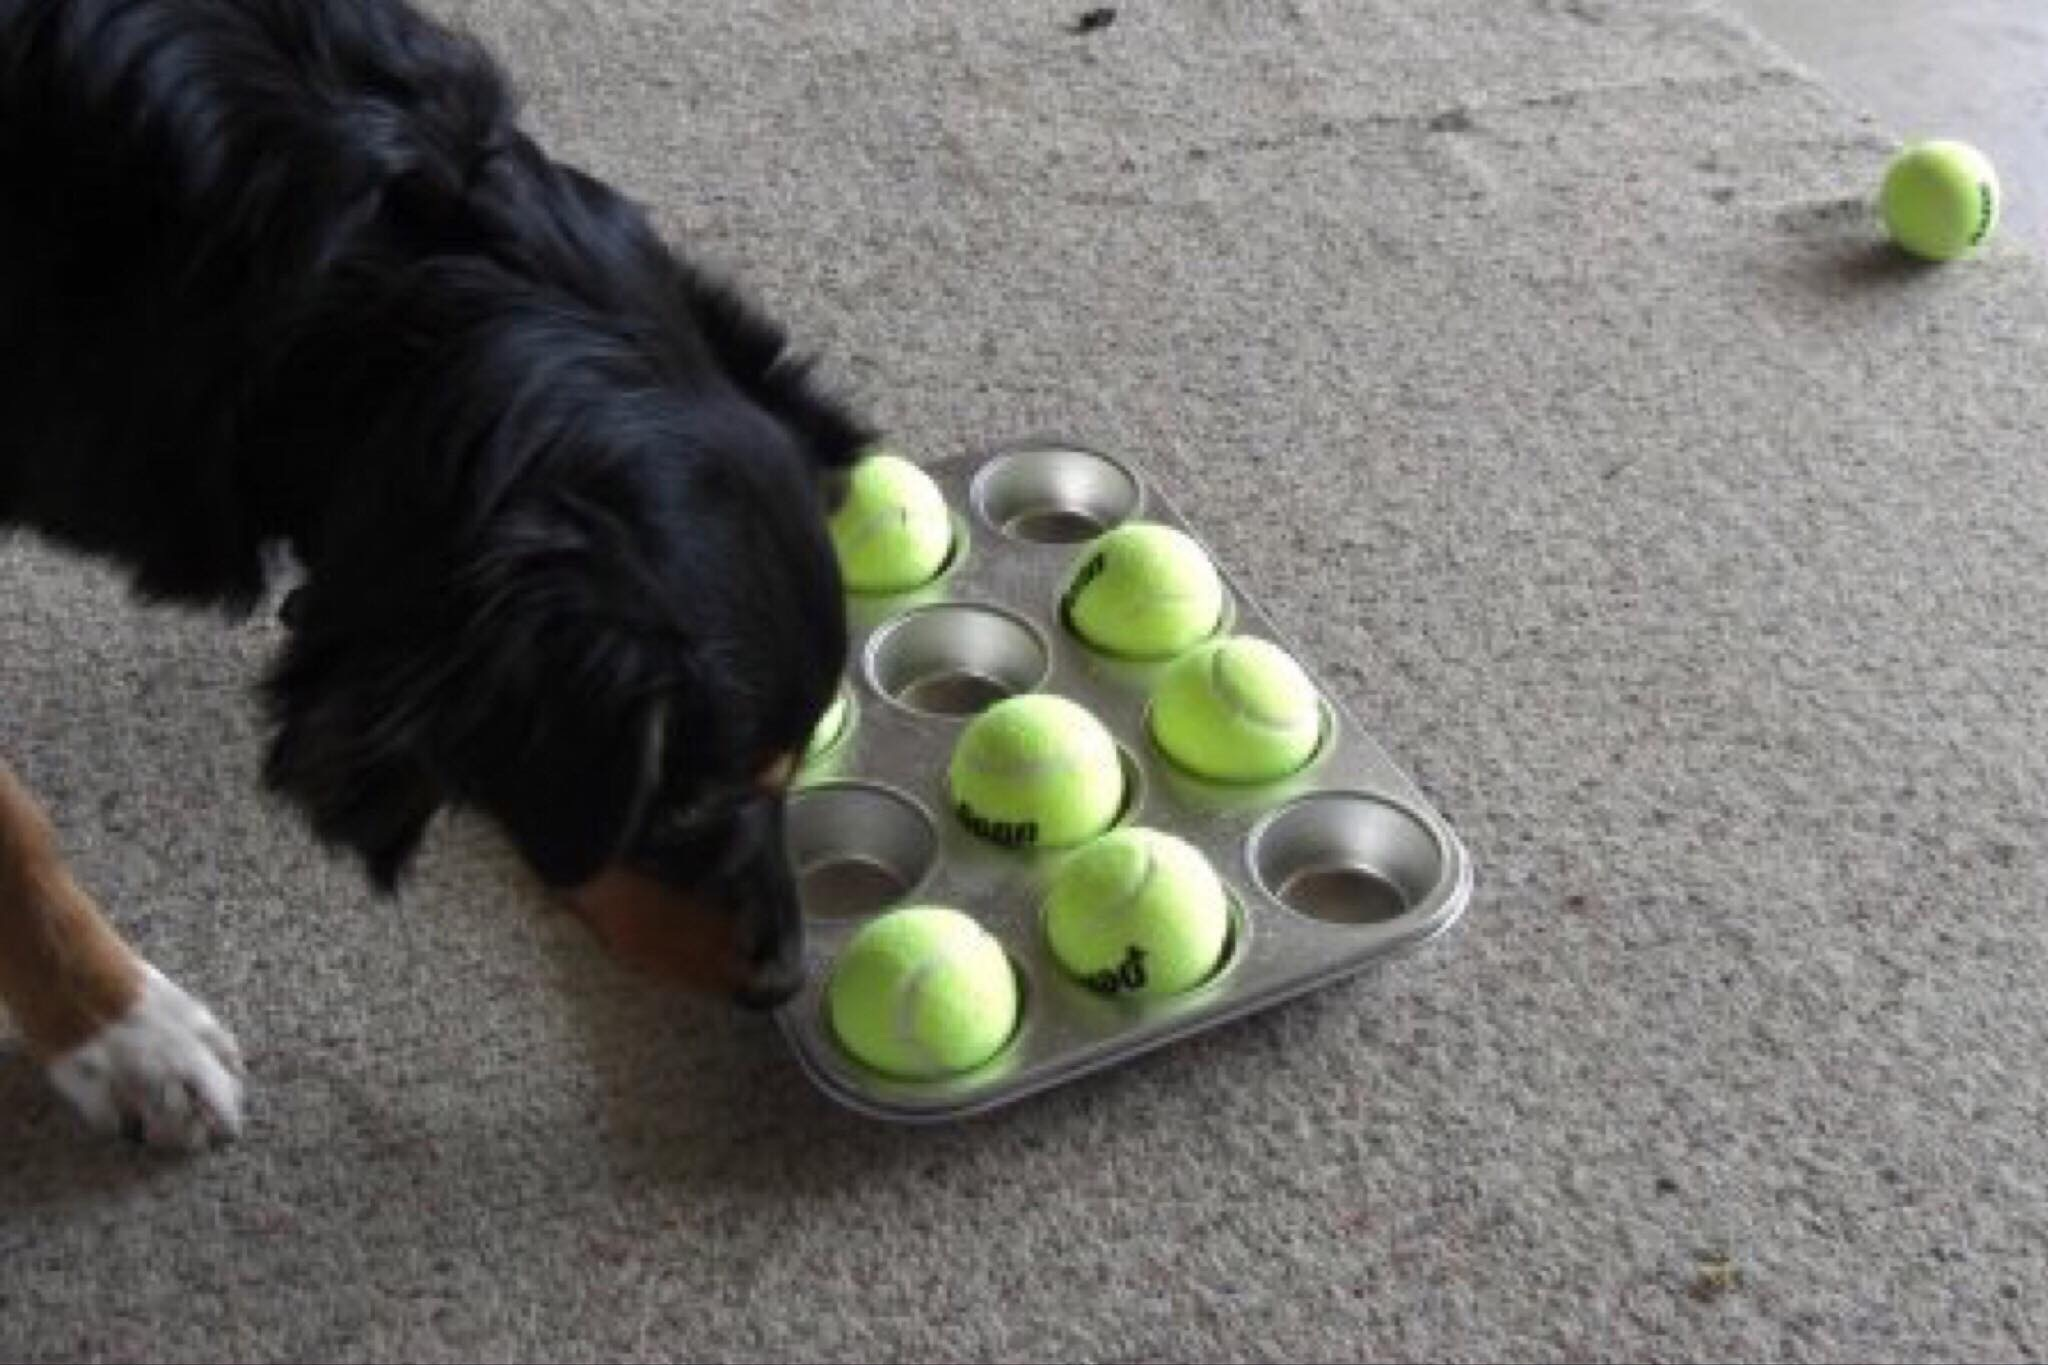 Muffin Tin with Tennis Ball covering the kibble